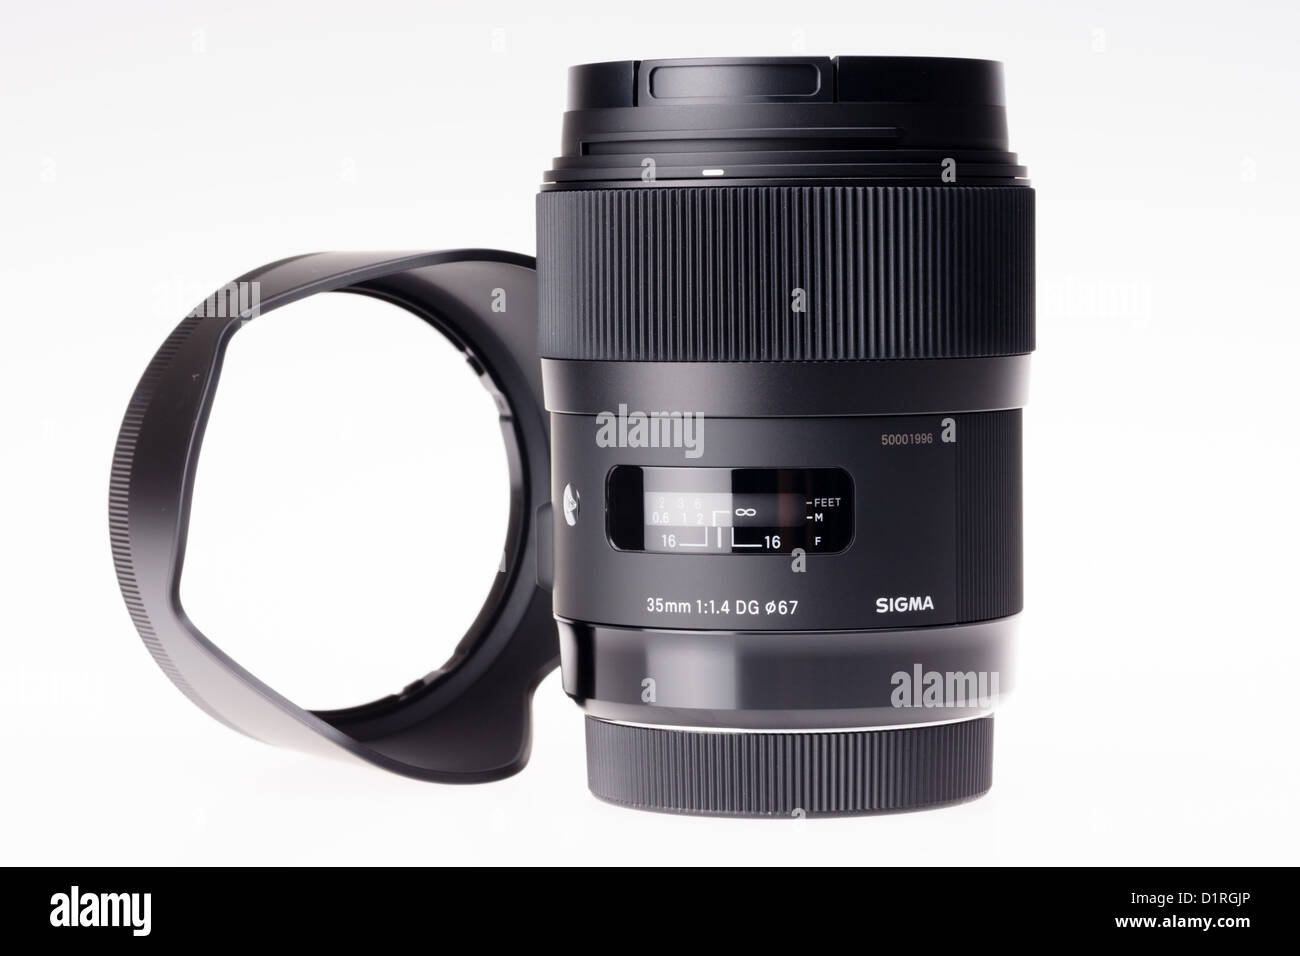 A Sigma 35mm f/1.4 DG HSM lens made in Japan, 2013 - one of the highest quality lenses ever made - Stock Image